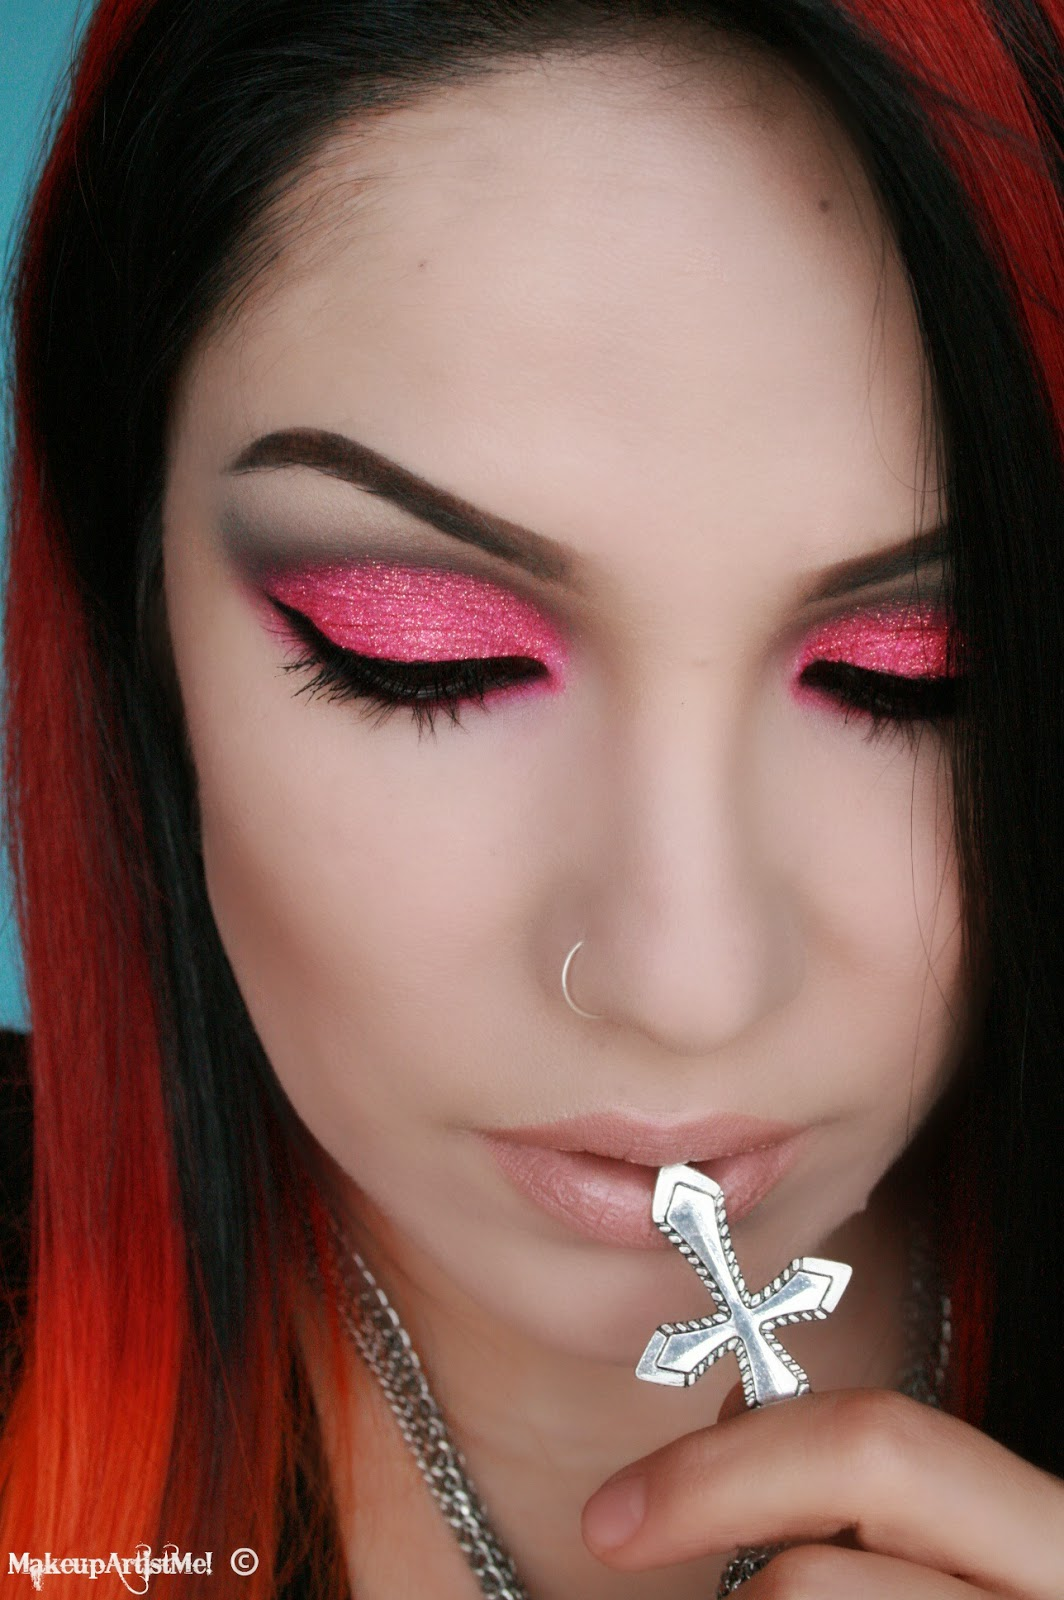 Make-up Artist Me!: Hot For Pink! Makeup Tutorial